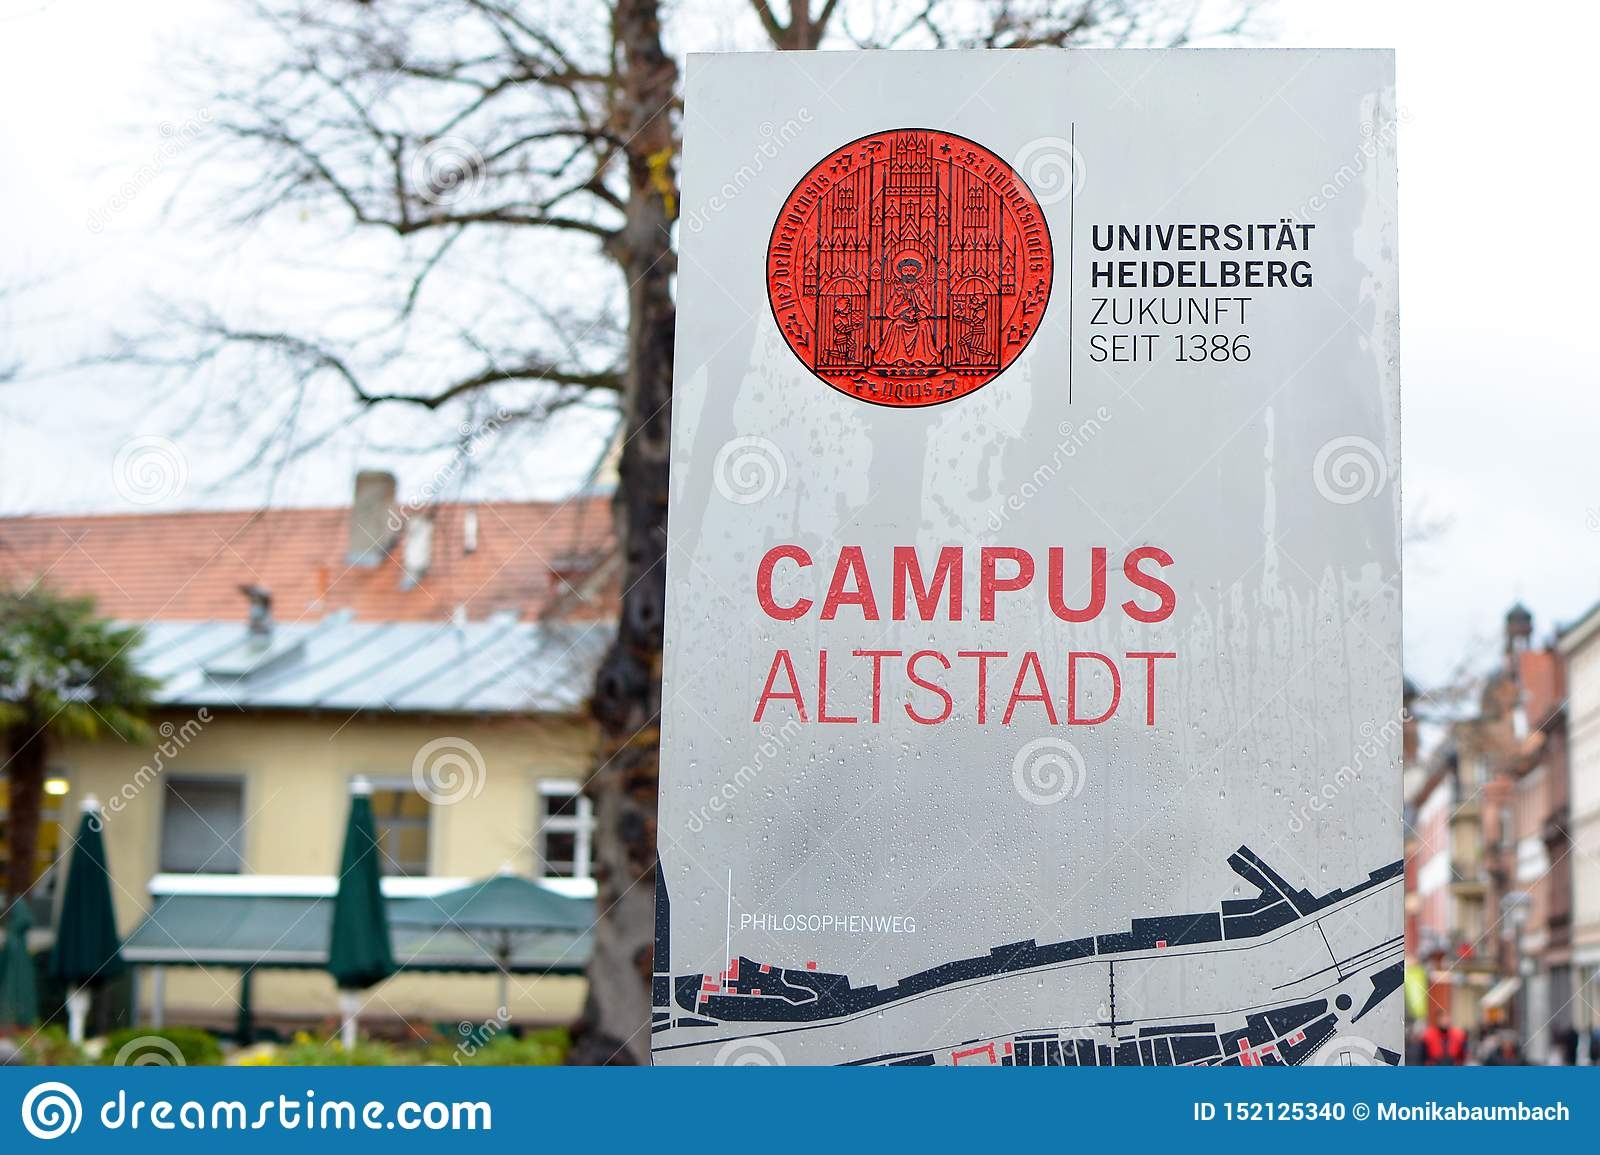 Sign with red university emblem and words `University Heidelberg, future since 1386` and `Campus historic city center` on